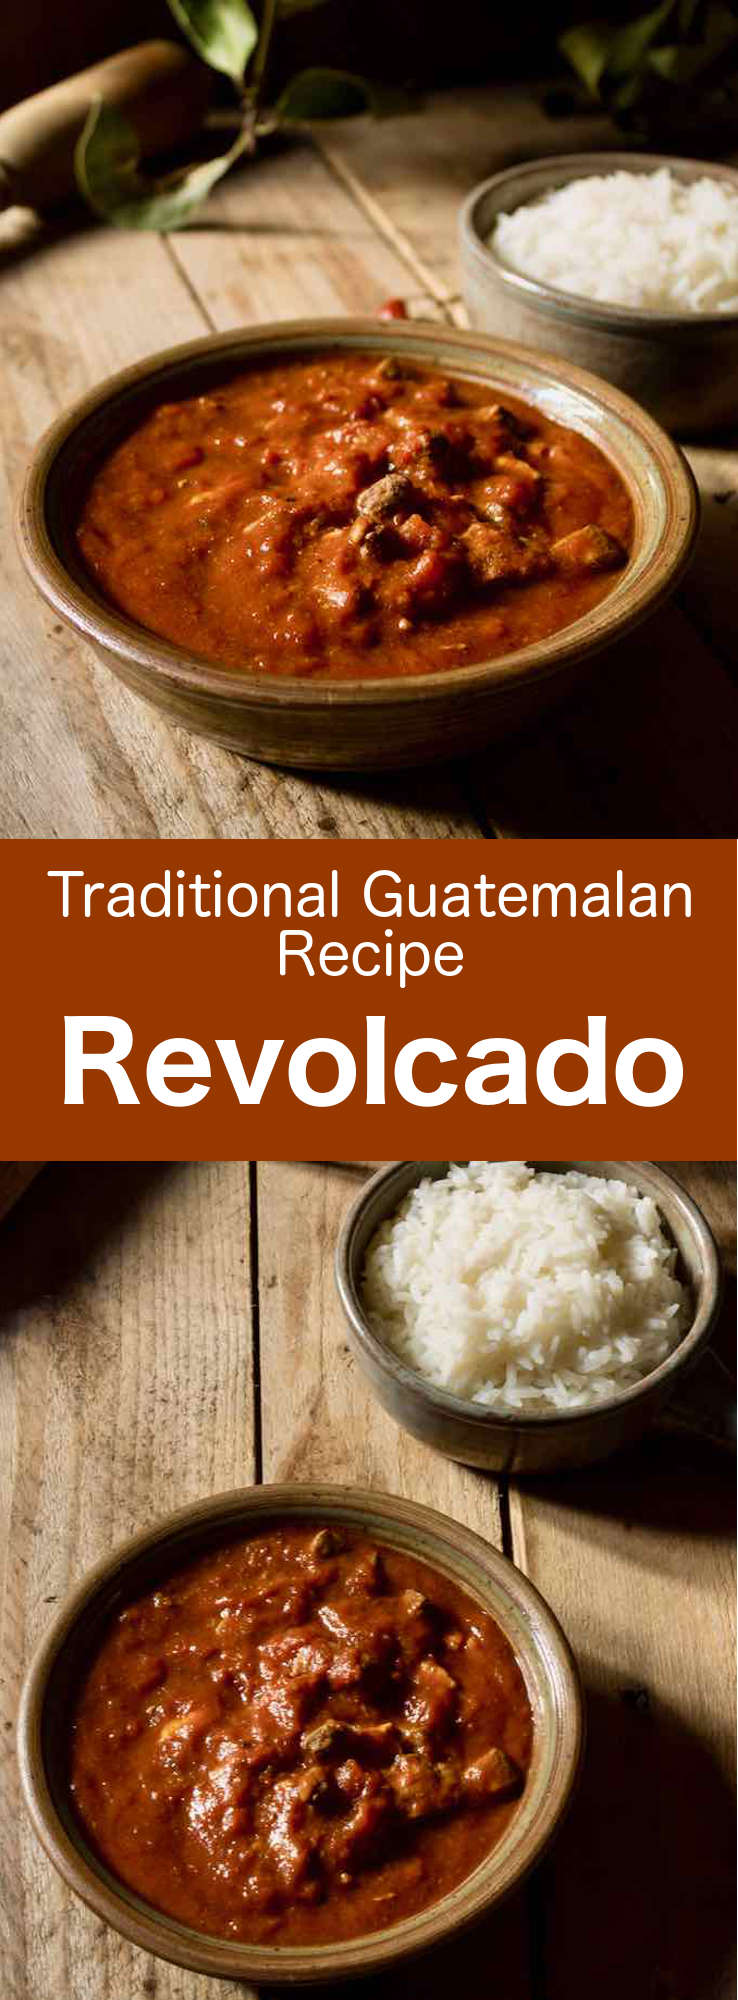 Revolcado is a delicious Guatemalan stew that is prepared with pig's head and offal, that are simmered in a spicy tomato sauce. #CentralAmericanCuisine #CentralAmericanRecipe #GuatemalanCuisine #GuatemalanRecipe #WorldCuisine #196flavors